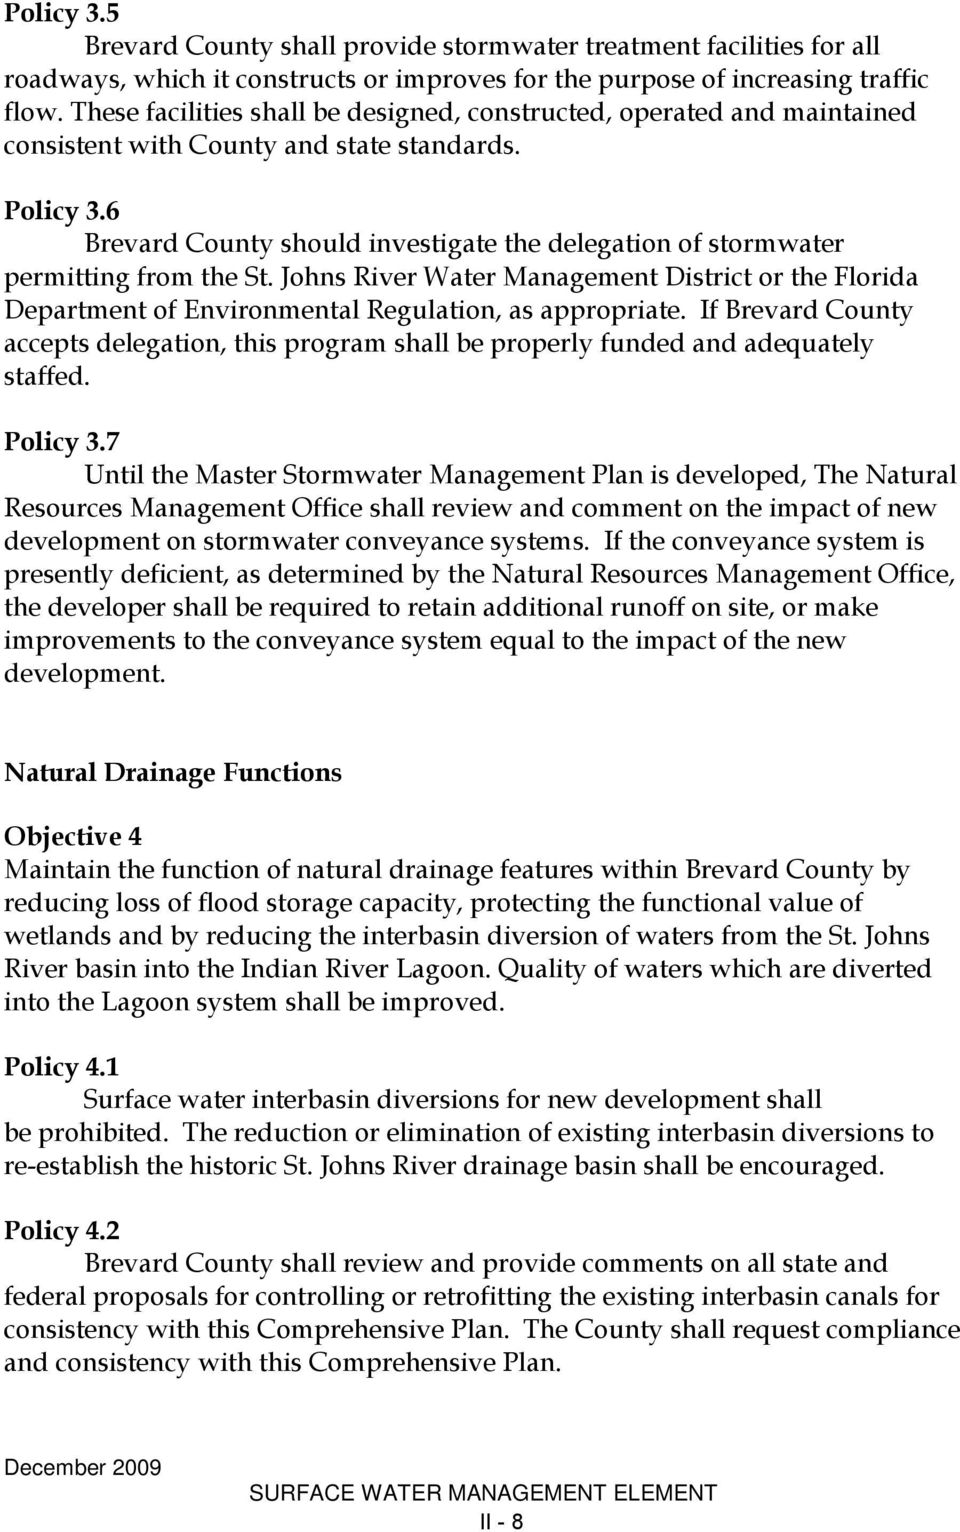 6 Brevard County should investigate the delegation of stormwater permitting from the St. Johns River Water Management District or the Florida Department of Environmental Regulation, as appropriate.